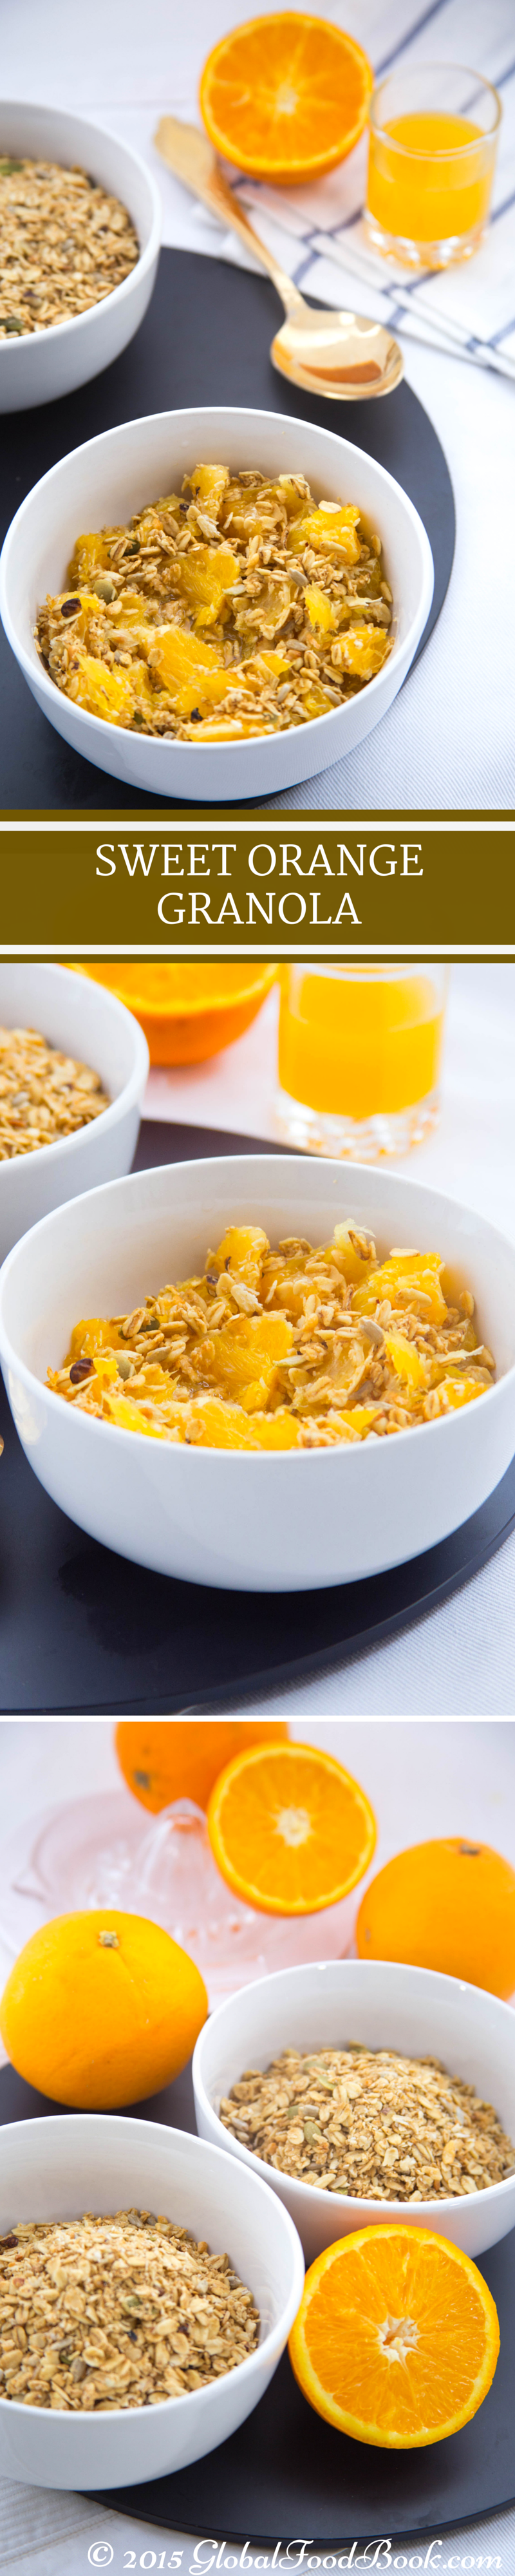 sweet orange granola (10)